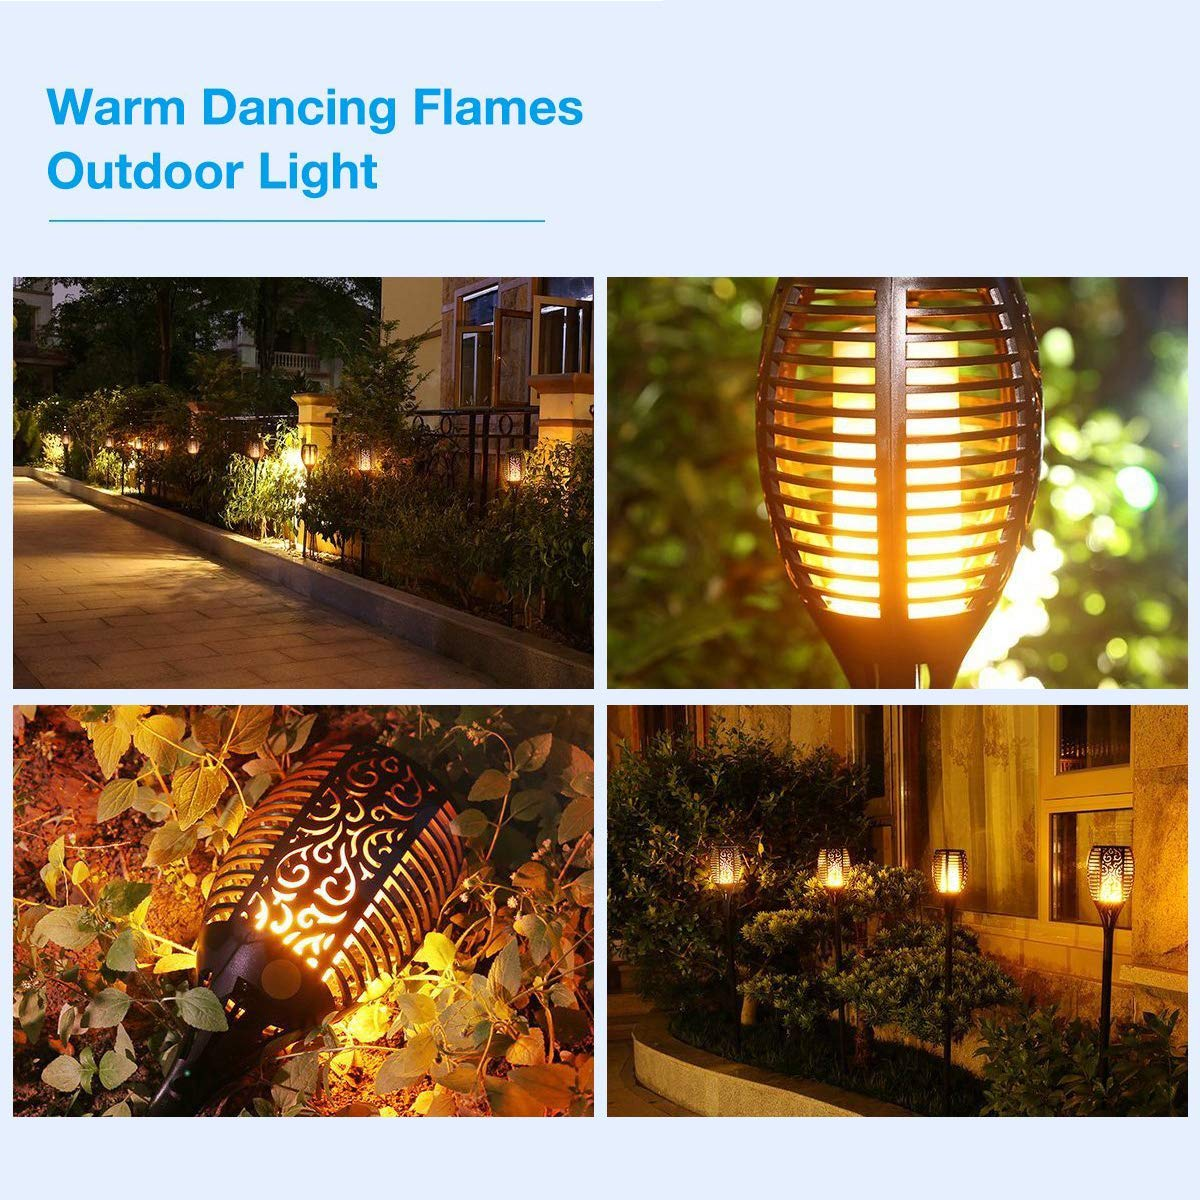 Xtozon Solar Torch Lights Upgraded, Dancing Flames Torch Solar Lamp, 96 LED Flame Effect Saving Lamp, Waterproof Outdoor Pathway Decoration Solar Security Light Auto On/Off from Dusk to Dawn - 4 pack by Xtozon (Image #5)